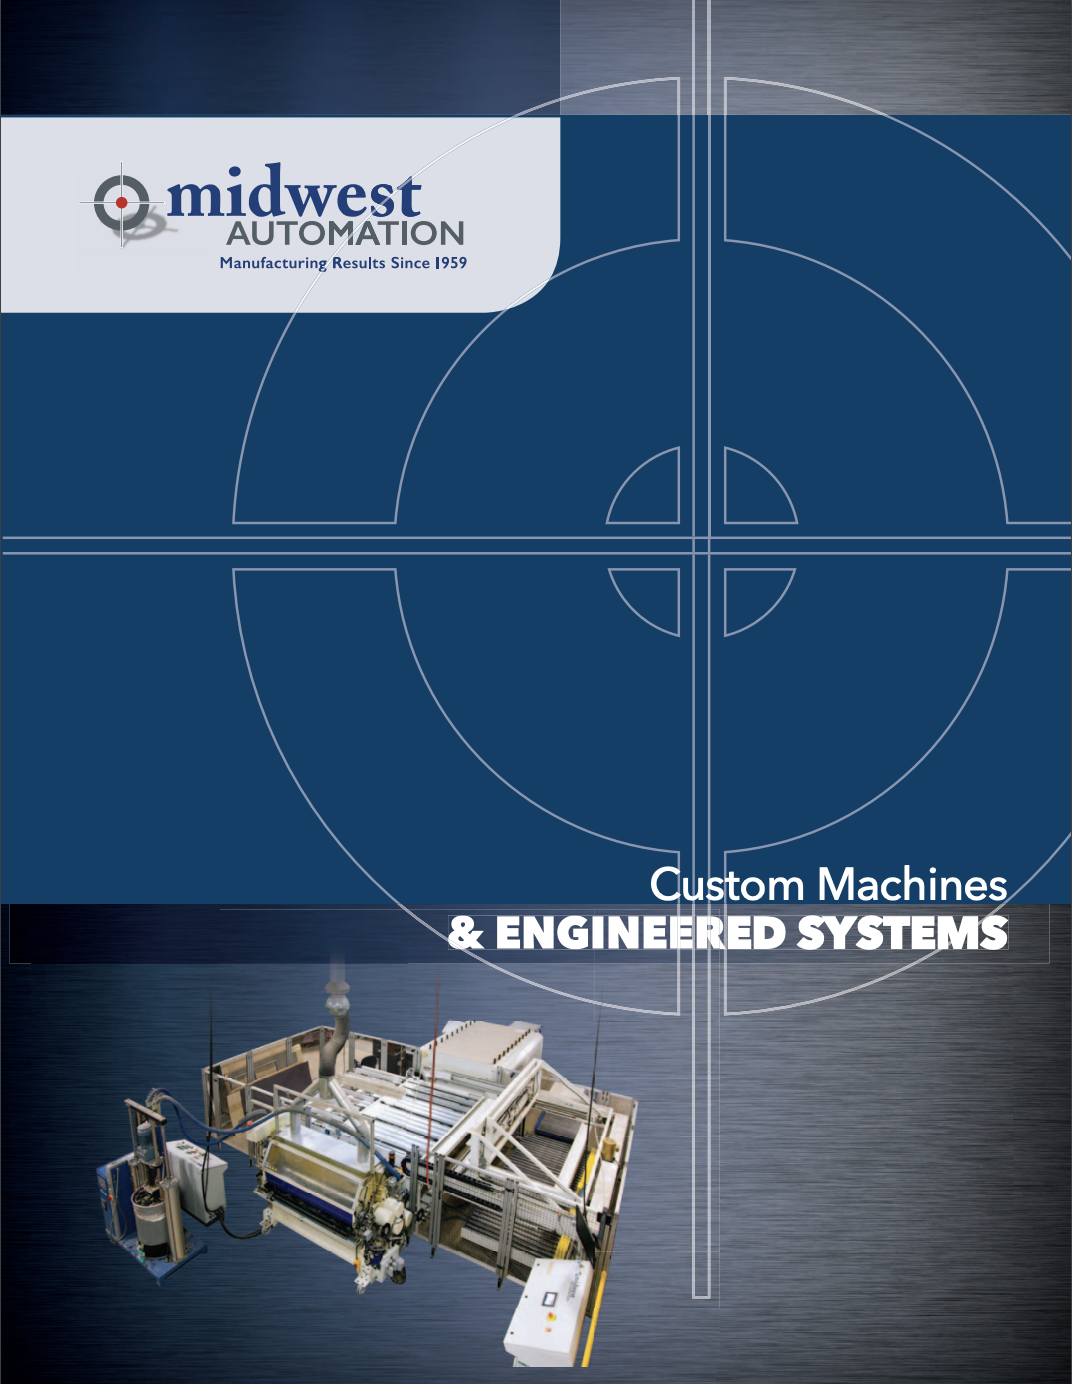 Custom Machines & Engineered Systems